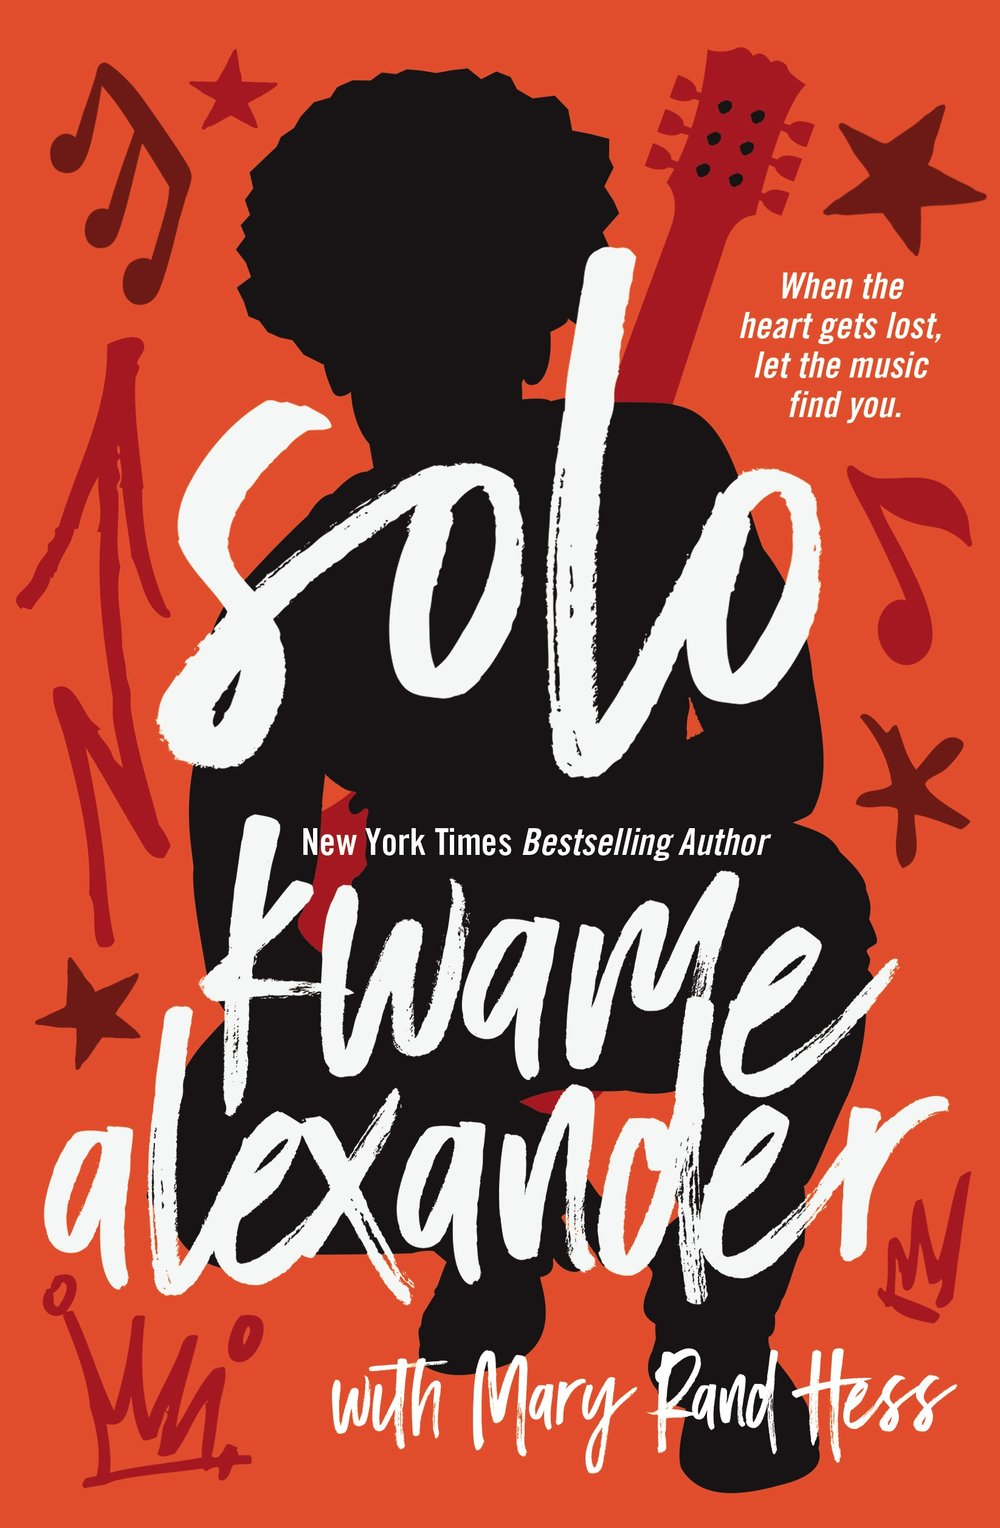 Solo, by Kwame Alexander with Mary Rand Hess